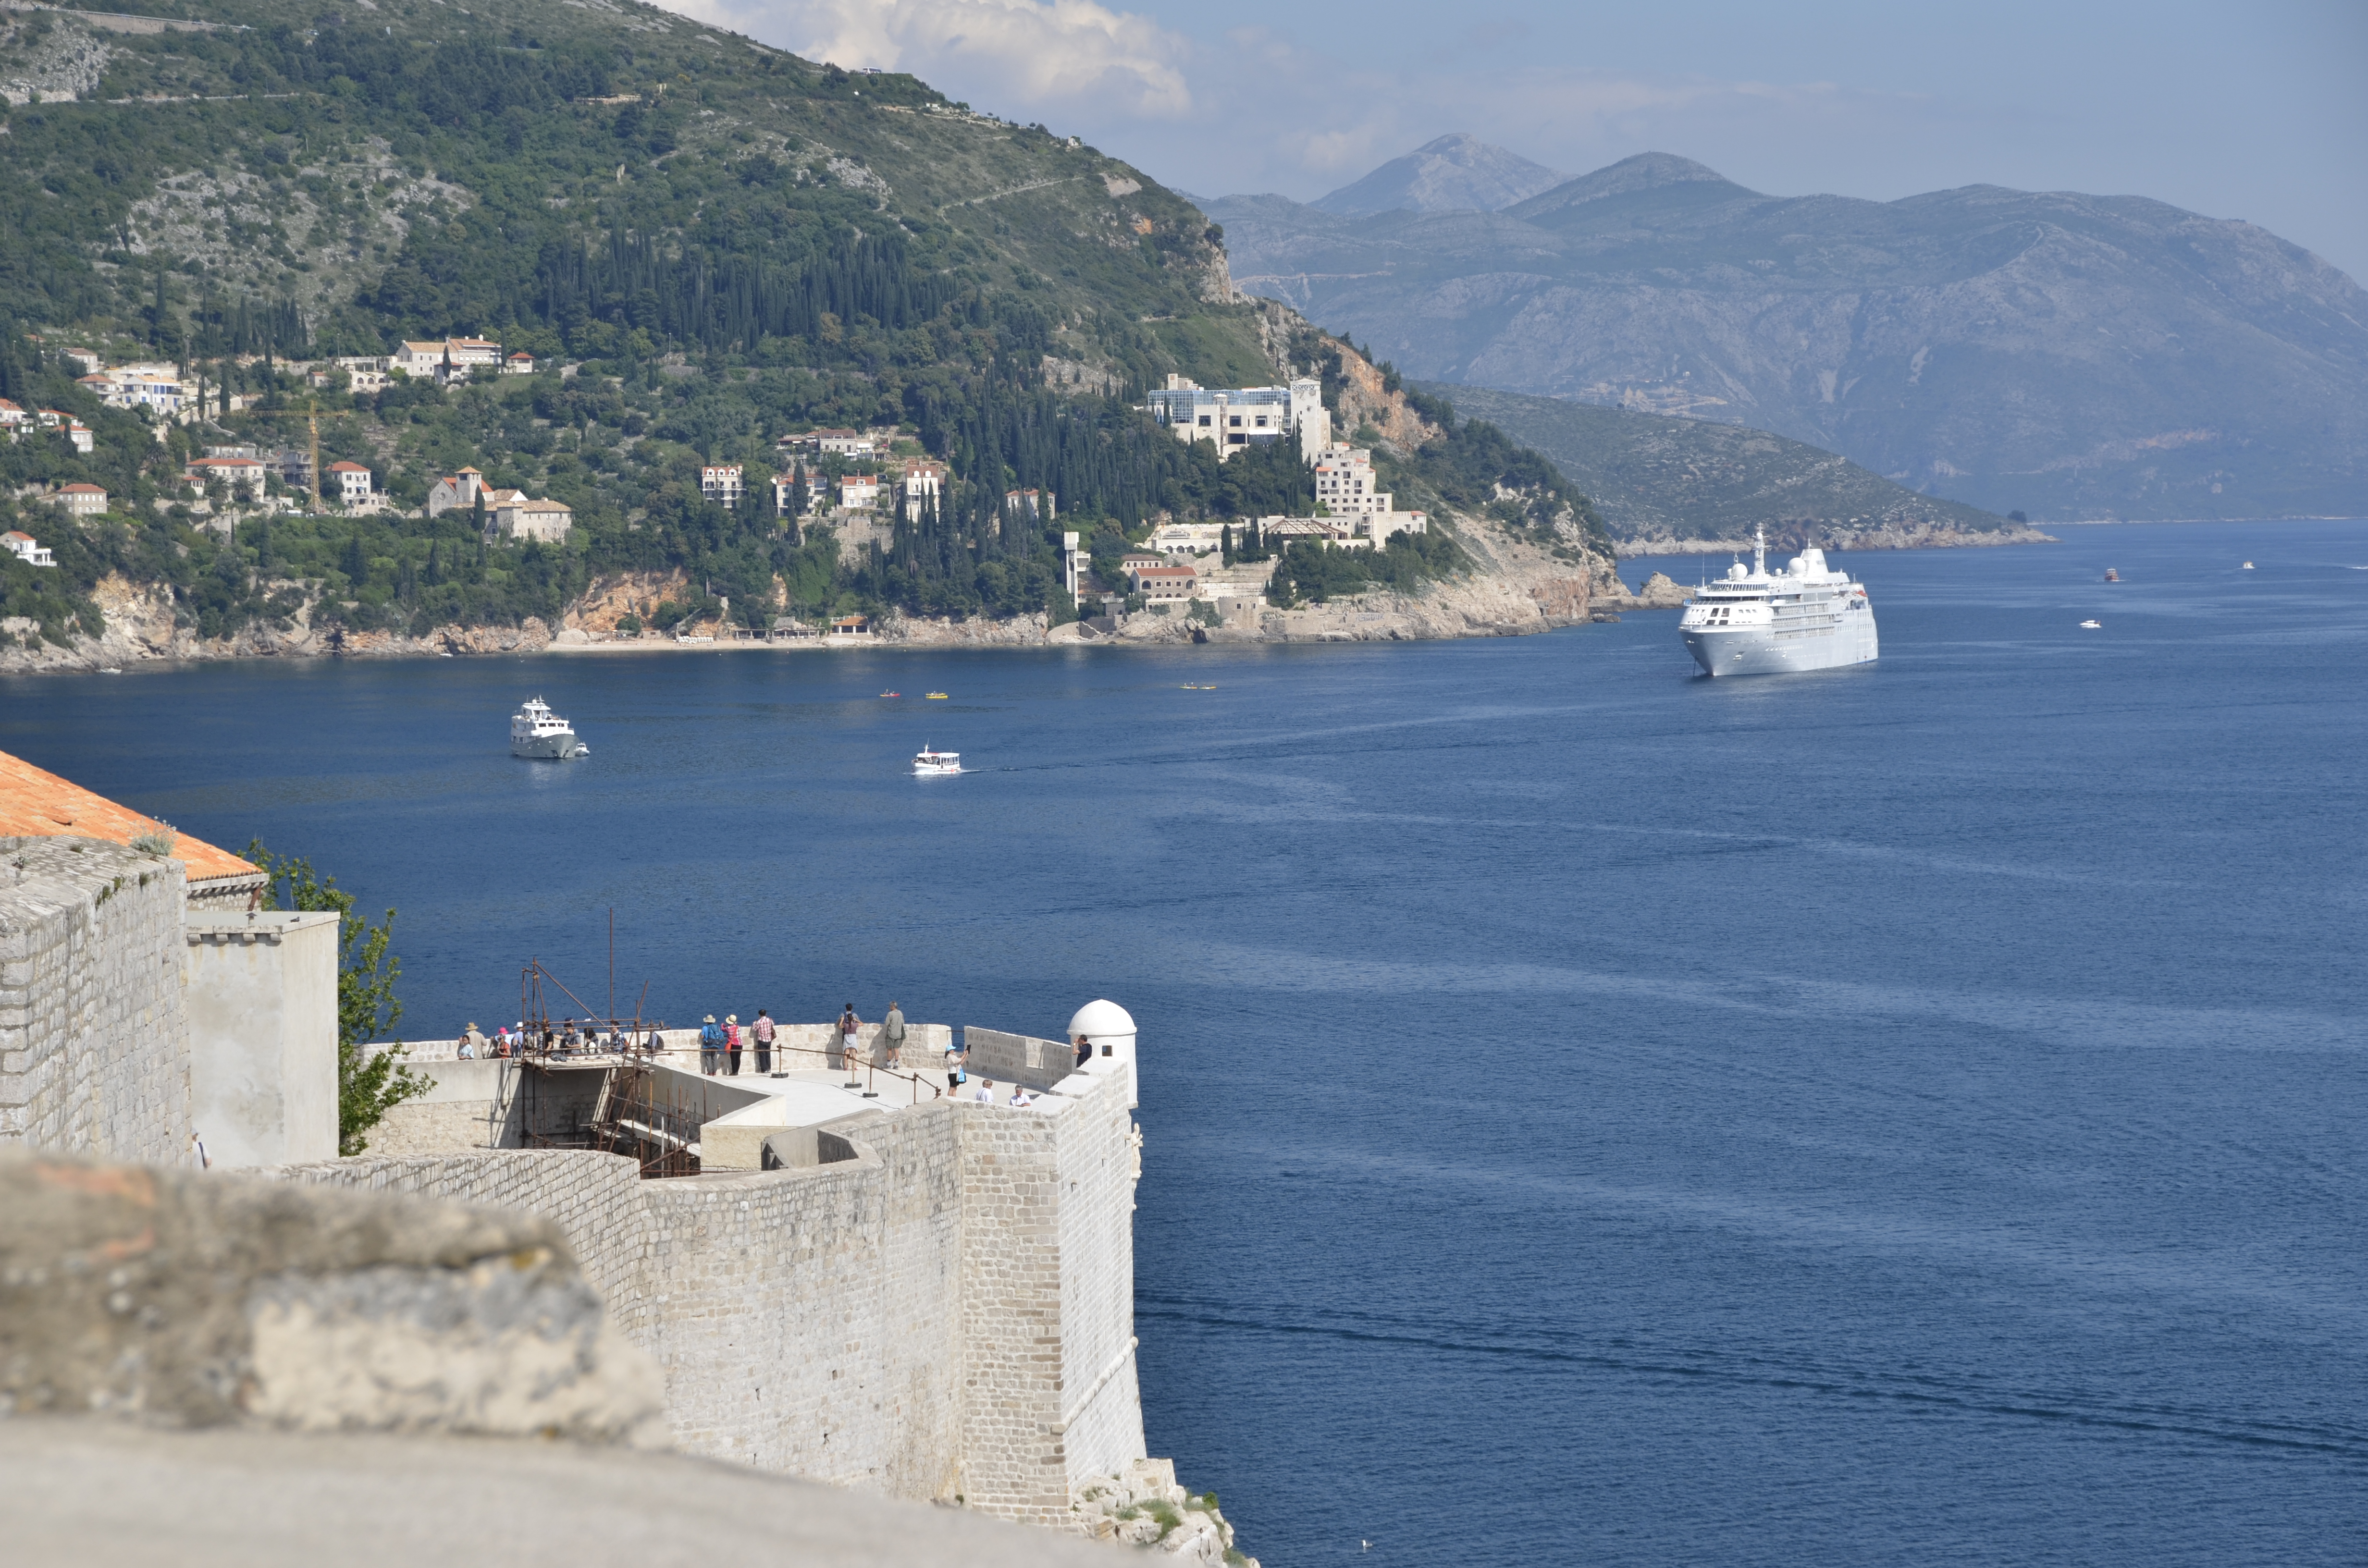 Cruise ship entering the harbor of Dubrovnik.